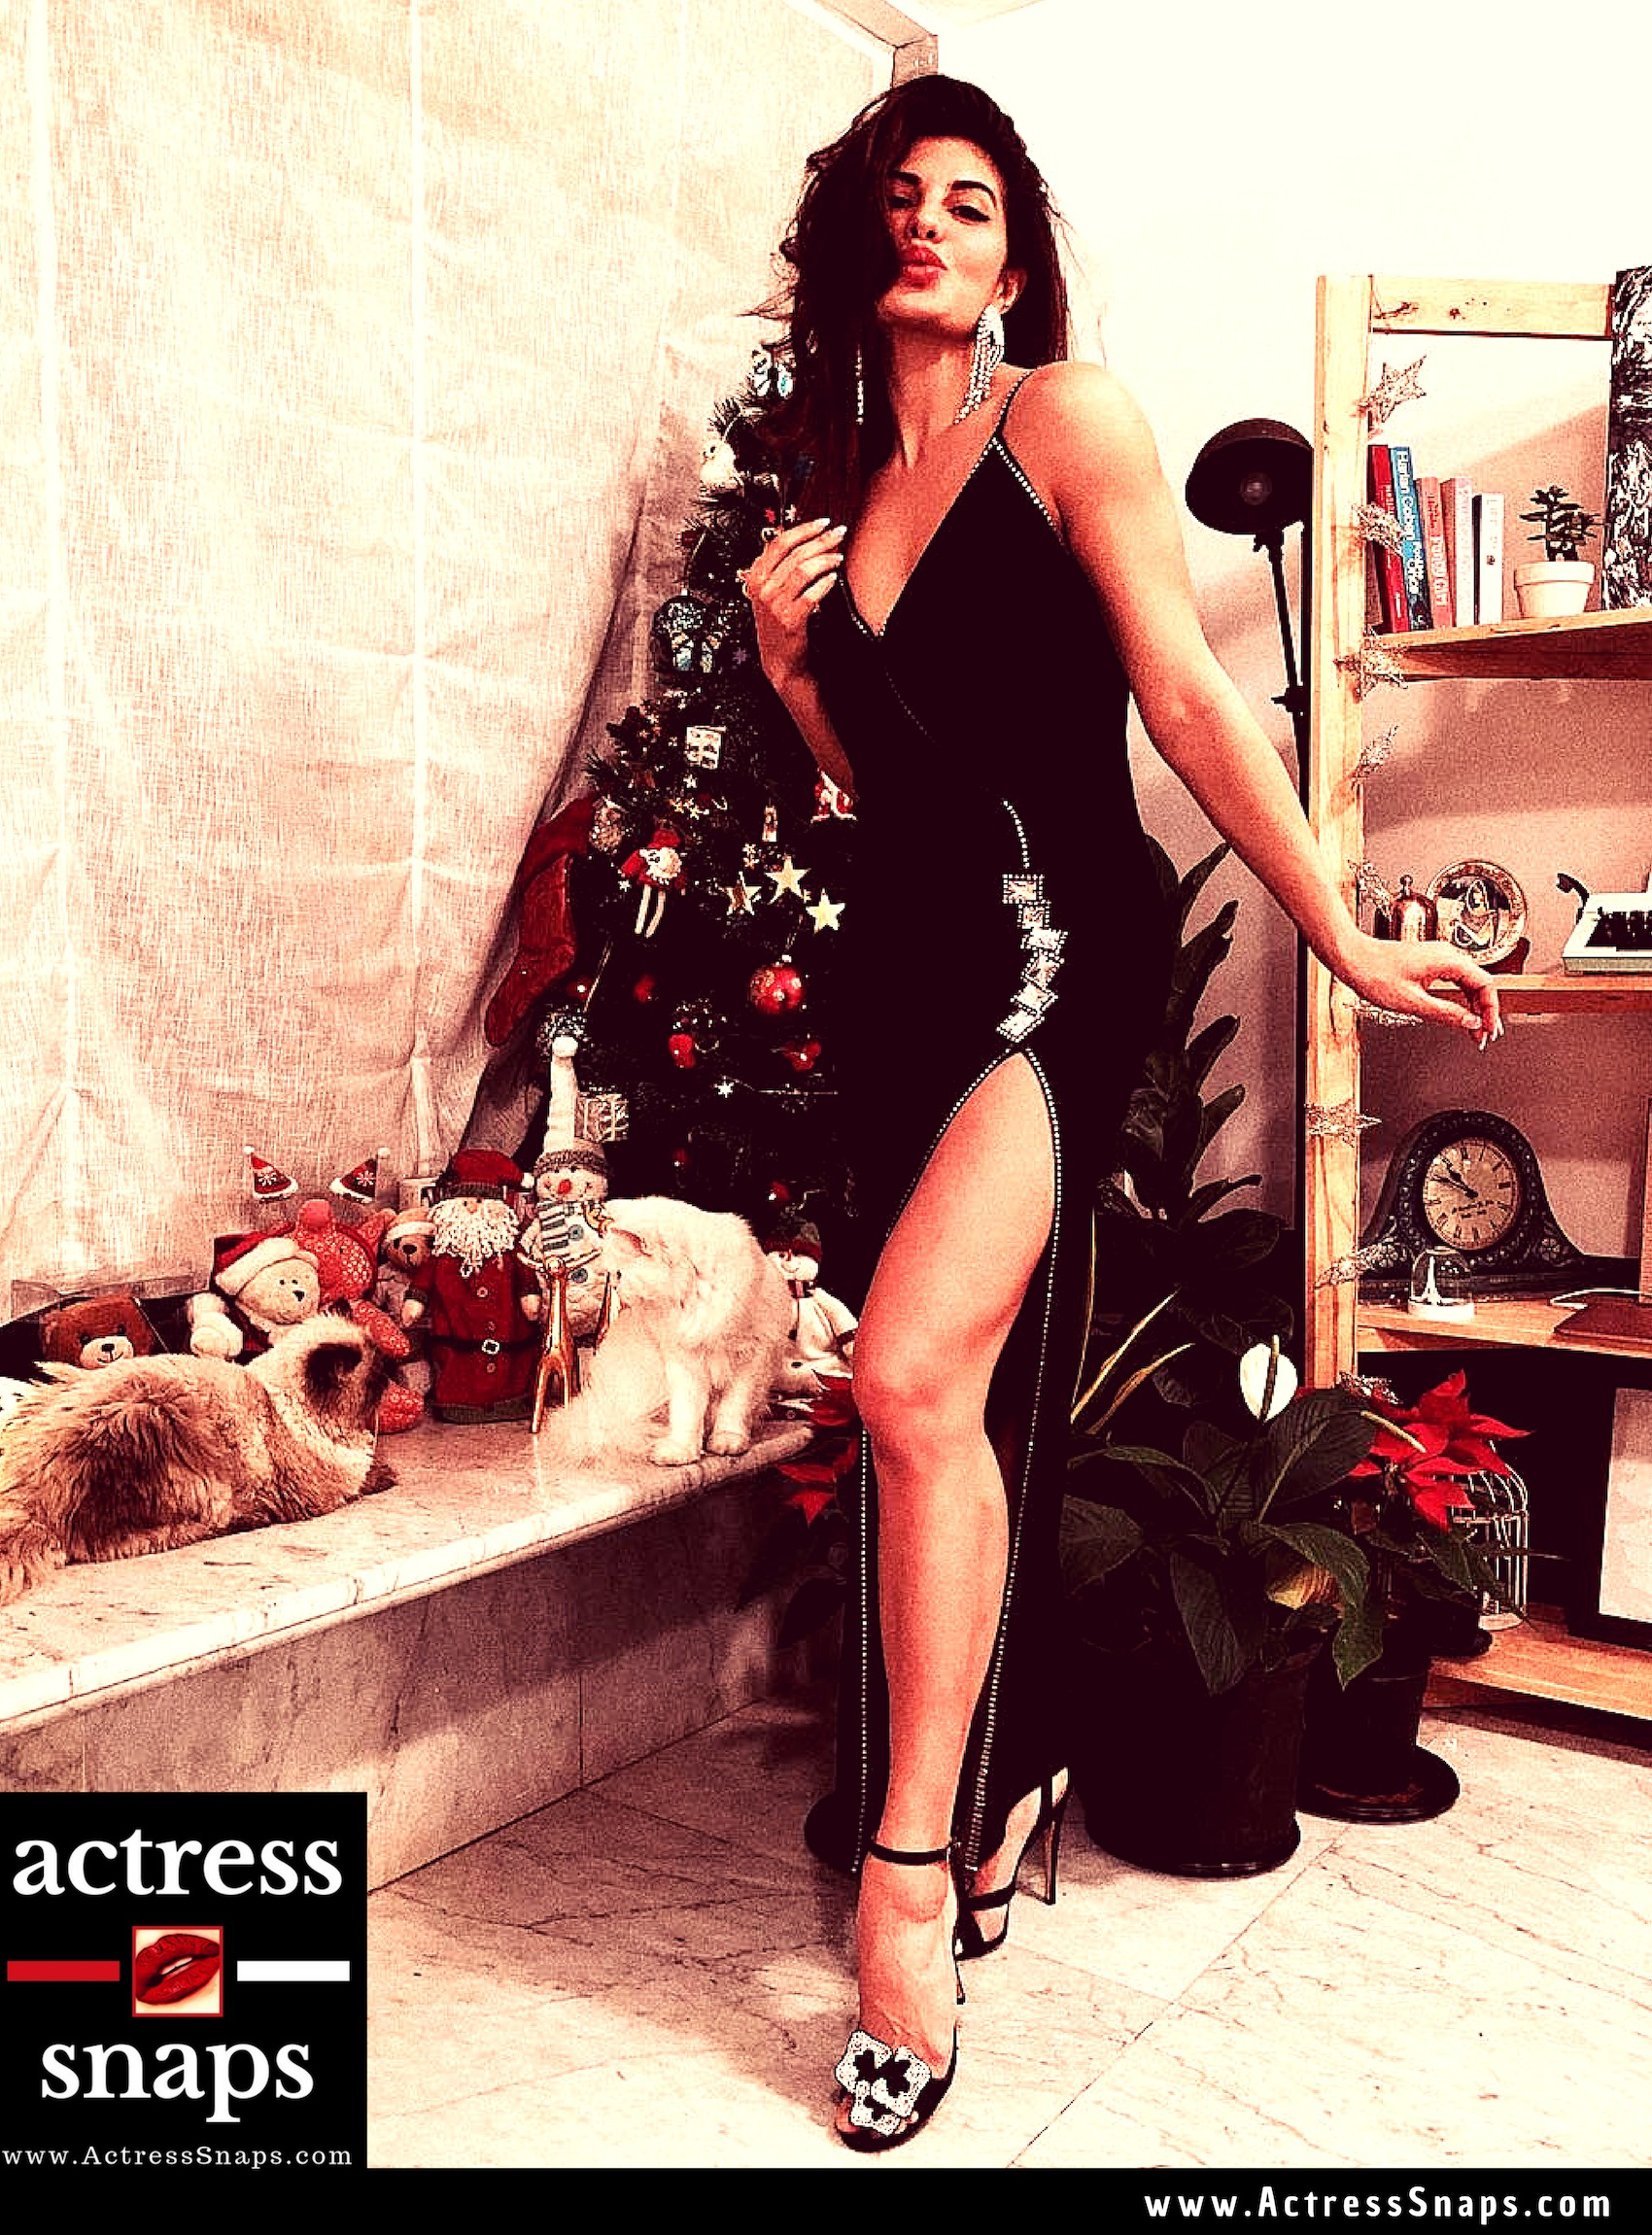 Jacqueline Fernandez wishing Fans a merry Christmas with this Photo post #VanessaHudgens